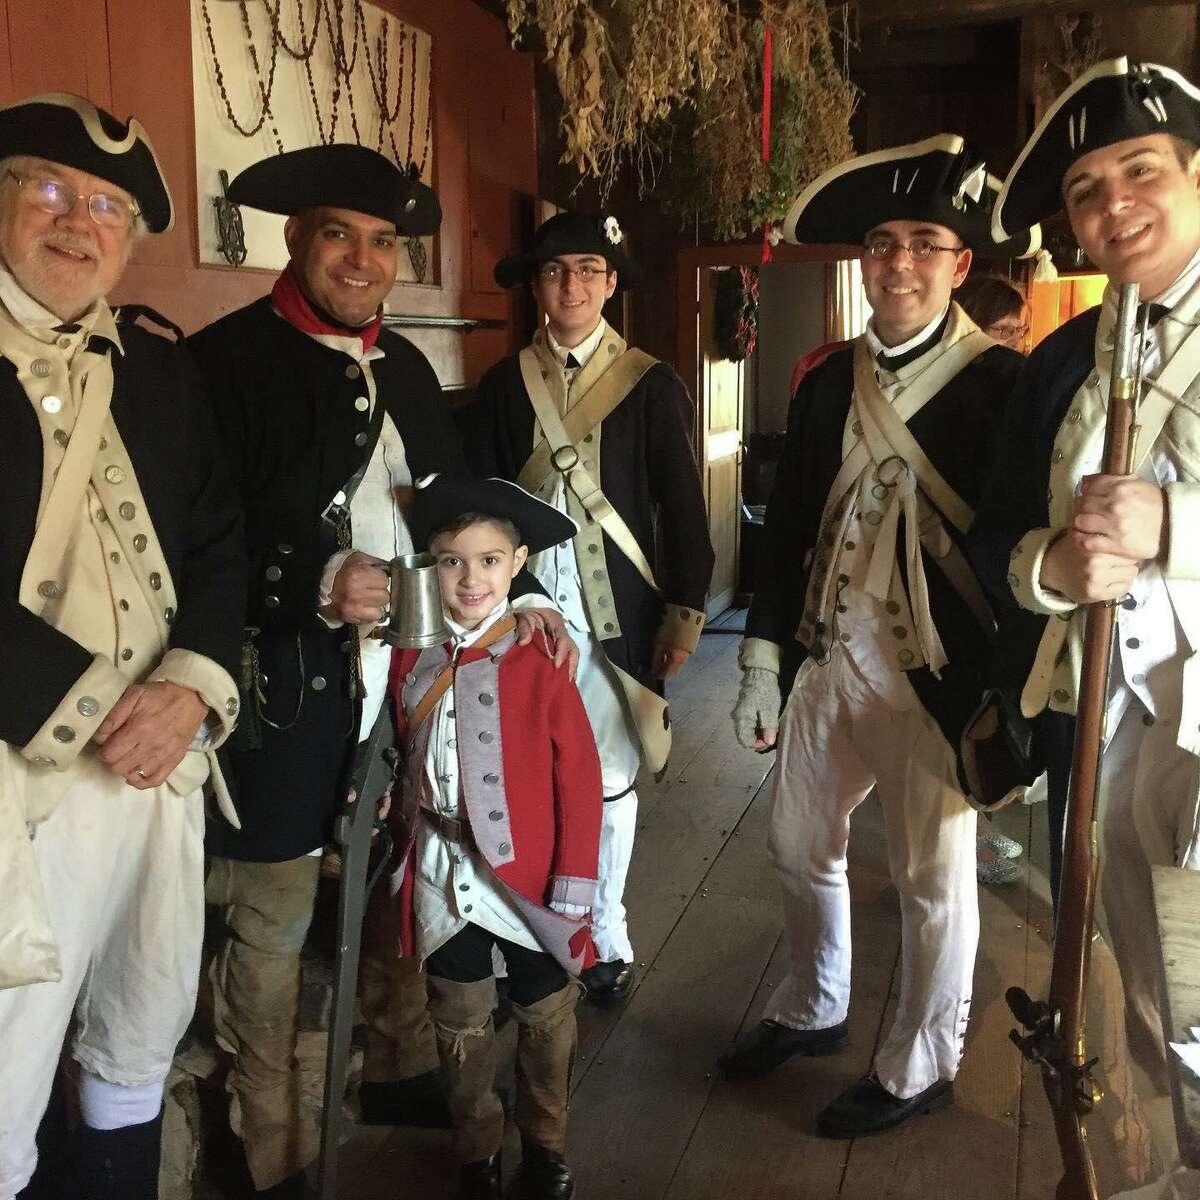 """TWELFTH NIGHT: With a larger outdoor element, the Derby Historical Society will present its """"Twelfth Night"""" celebration (previous one above) Jan. 10 from 11 a.m. to 3 p.m. at the David Humphreys House in Ansonia. Details in Thursday's Go section."""